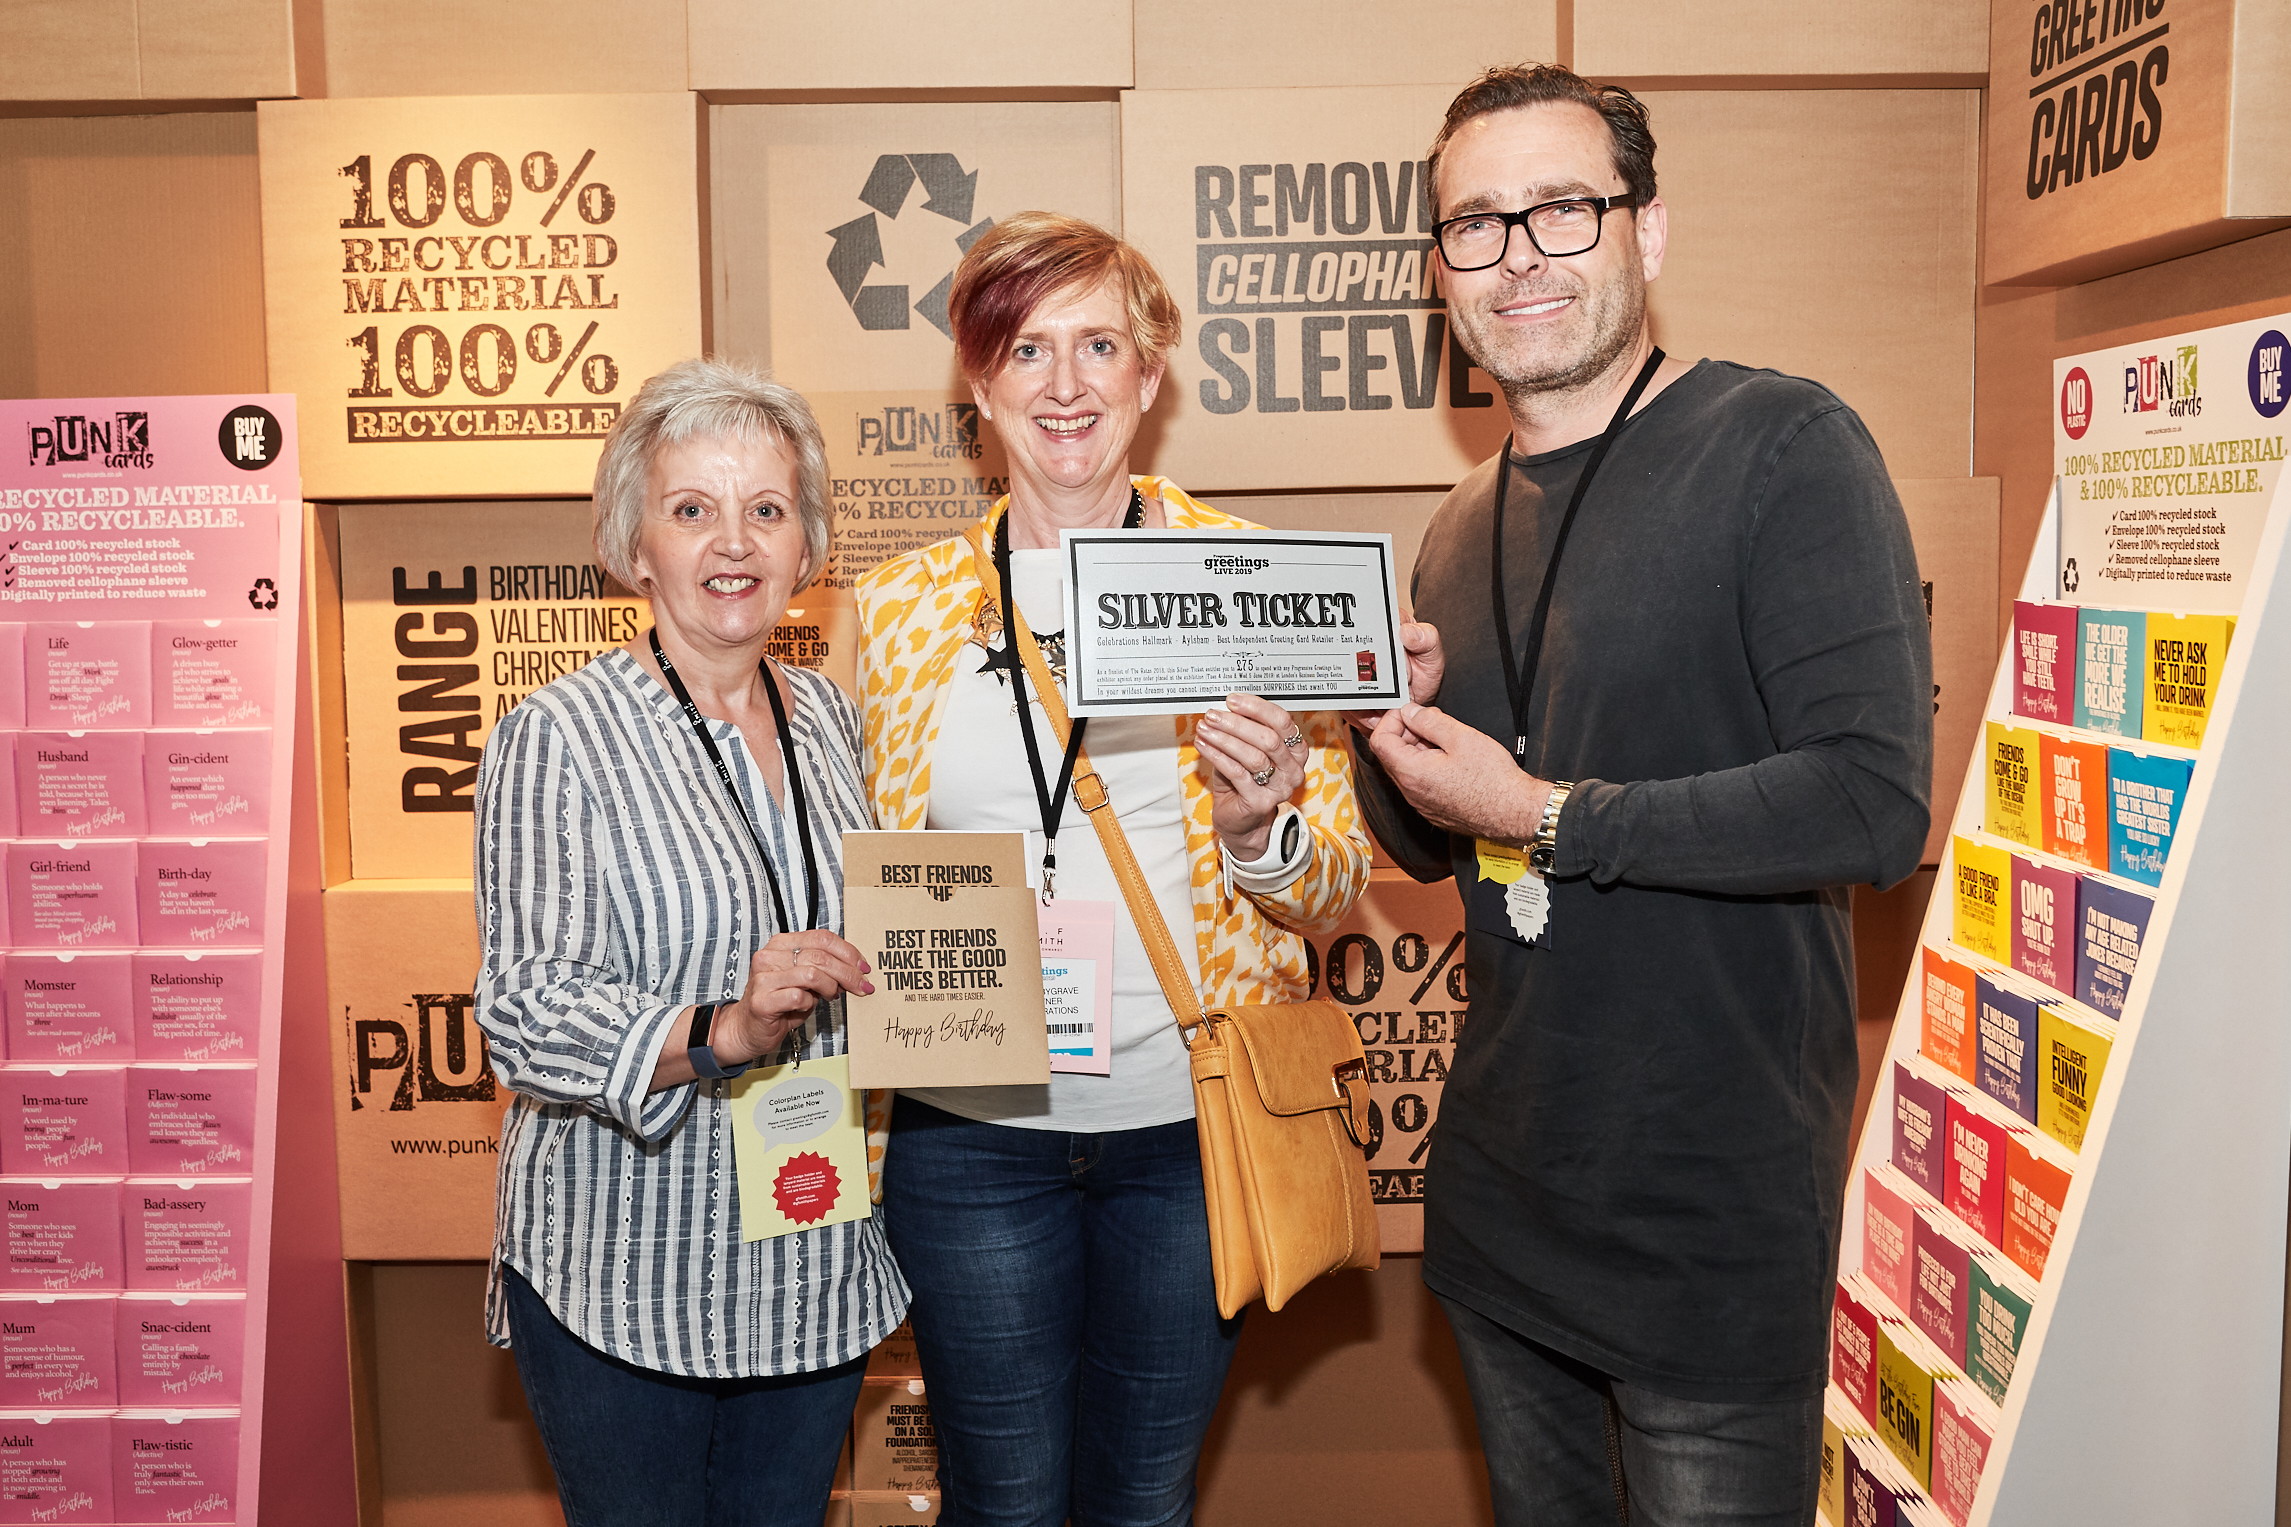 Above: Celebrations' Linda Bygrave (centre) and Mandy Baker with David Nicholls, co-owner of Punk Cards at PG Live. Impressed by the publisher's eco-approach, Linda and Mandy spent their Silver Ticket with the company.